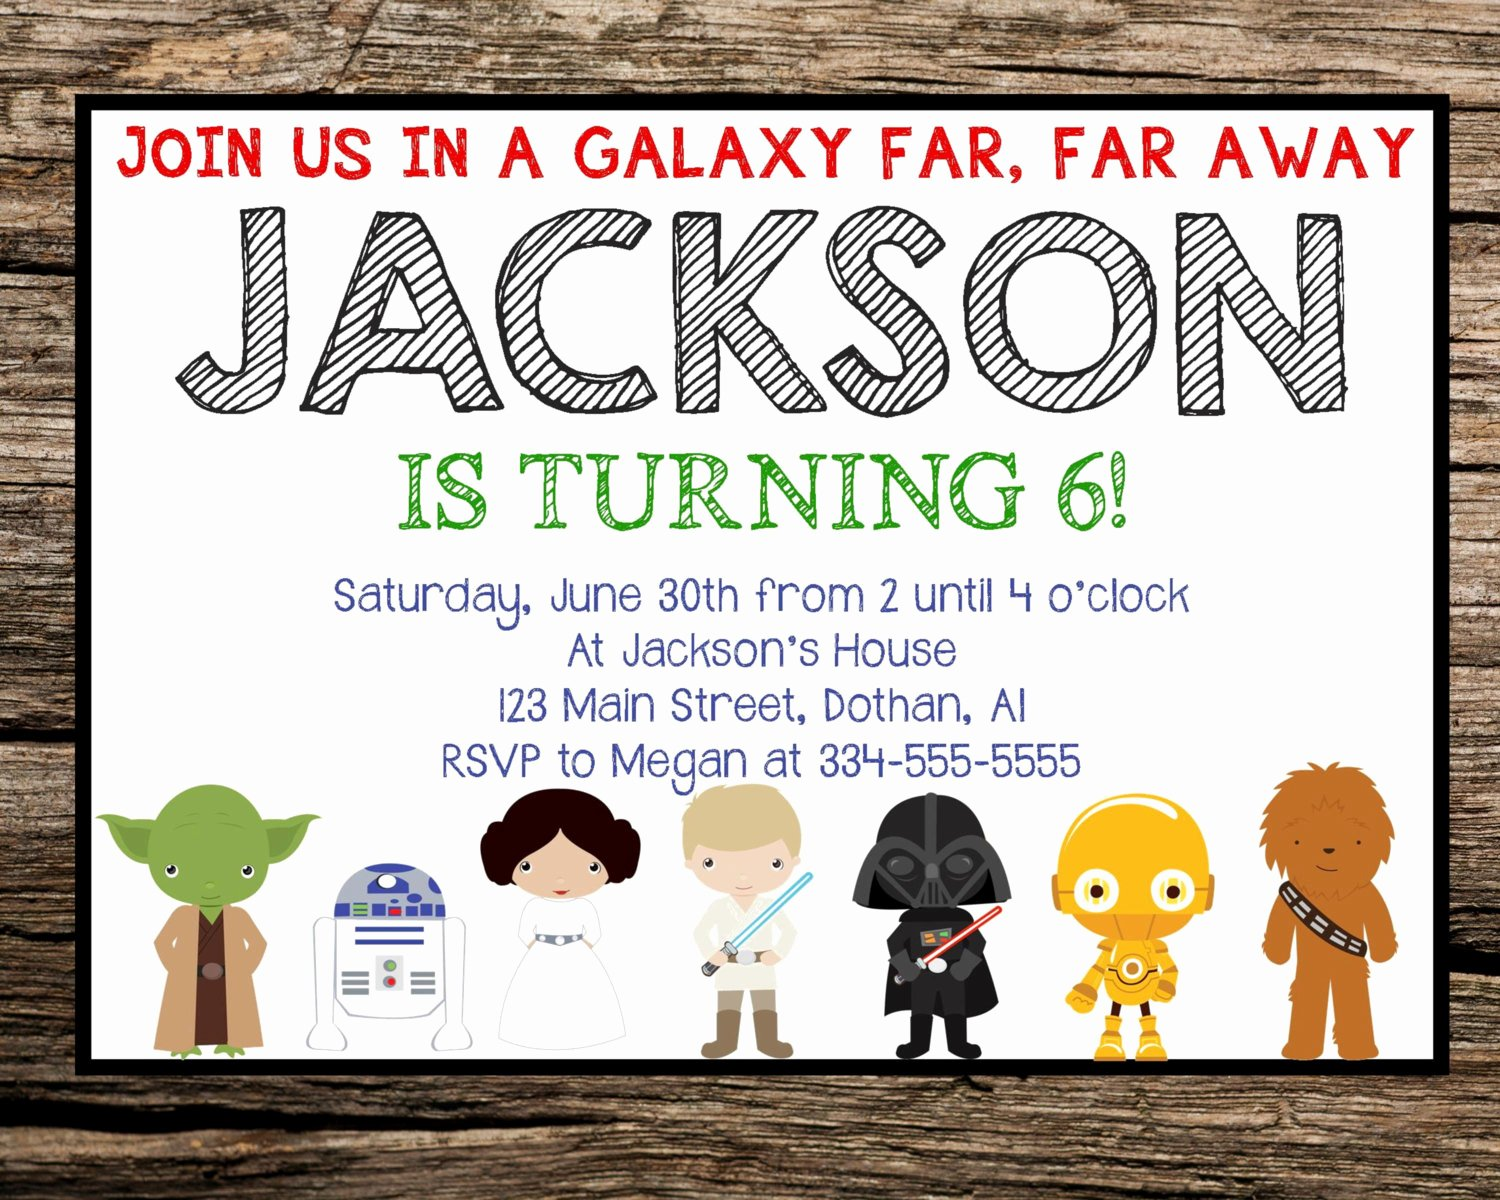 Star Wars Birthday Party Invitation Fresh Star Wars Invitation Star Wars Birthday Invitation by Mkellydesign